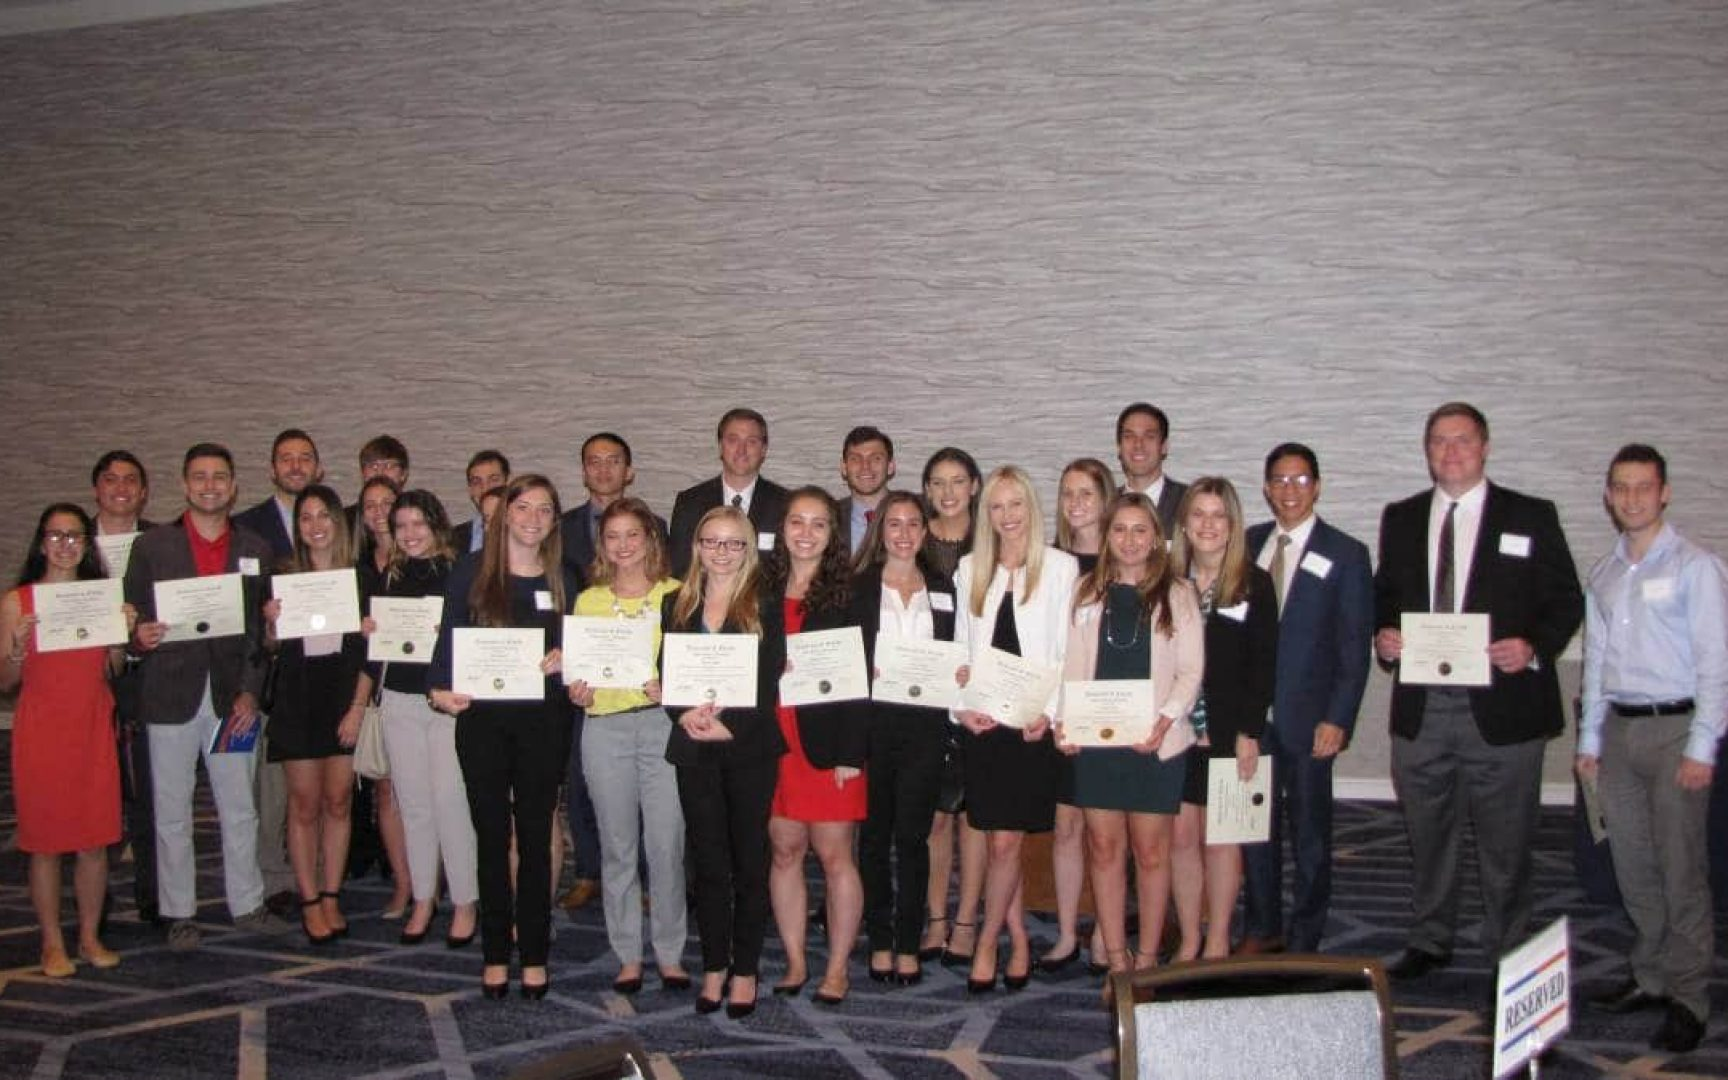 Fisher School students pose for a photo at an award banquet